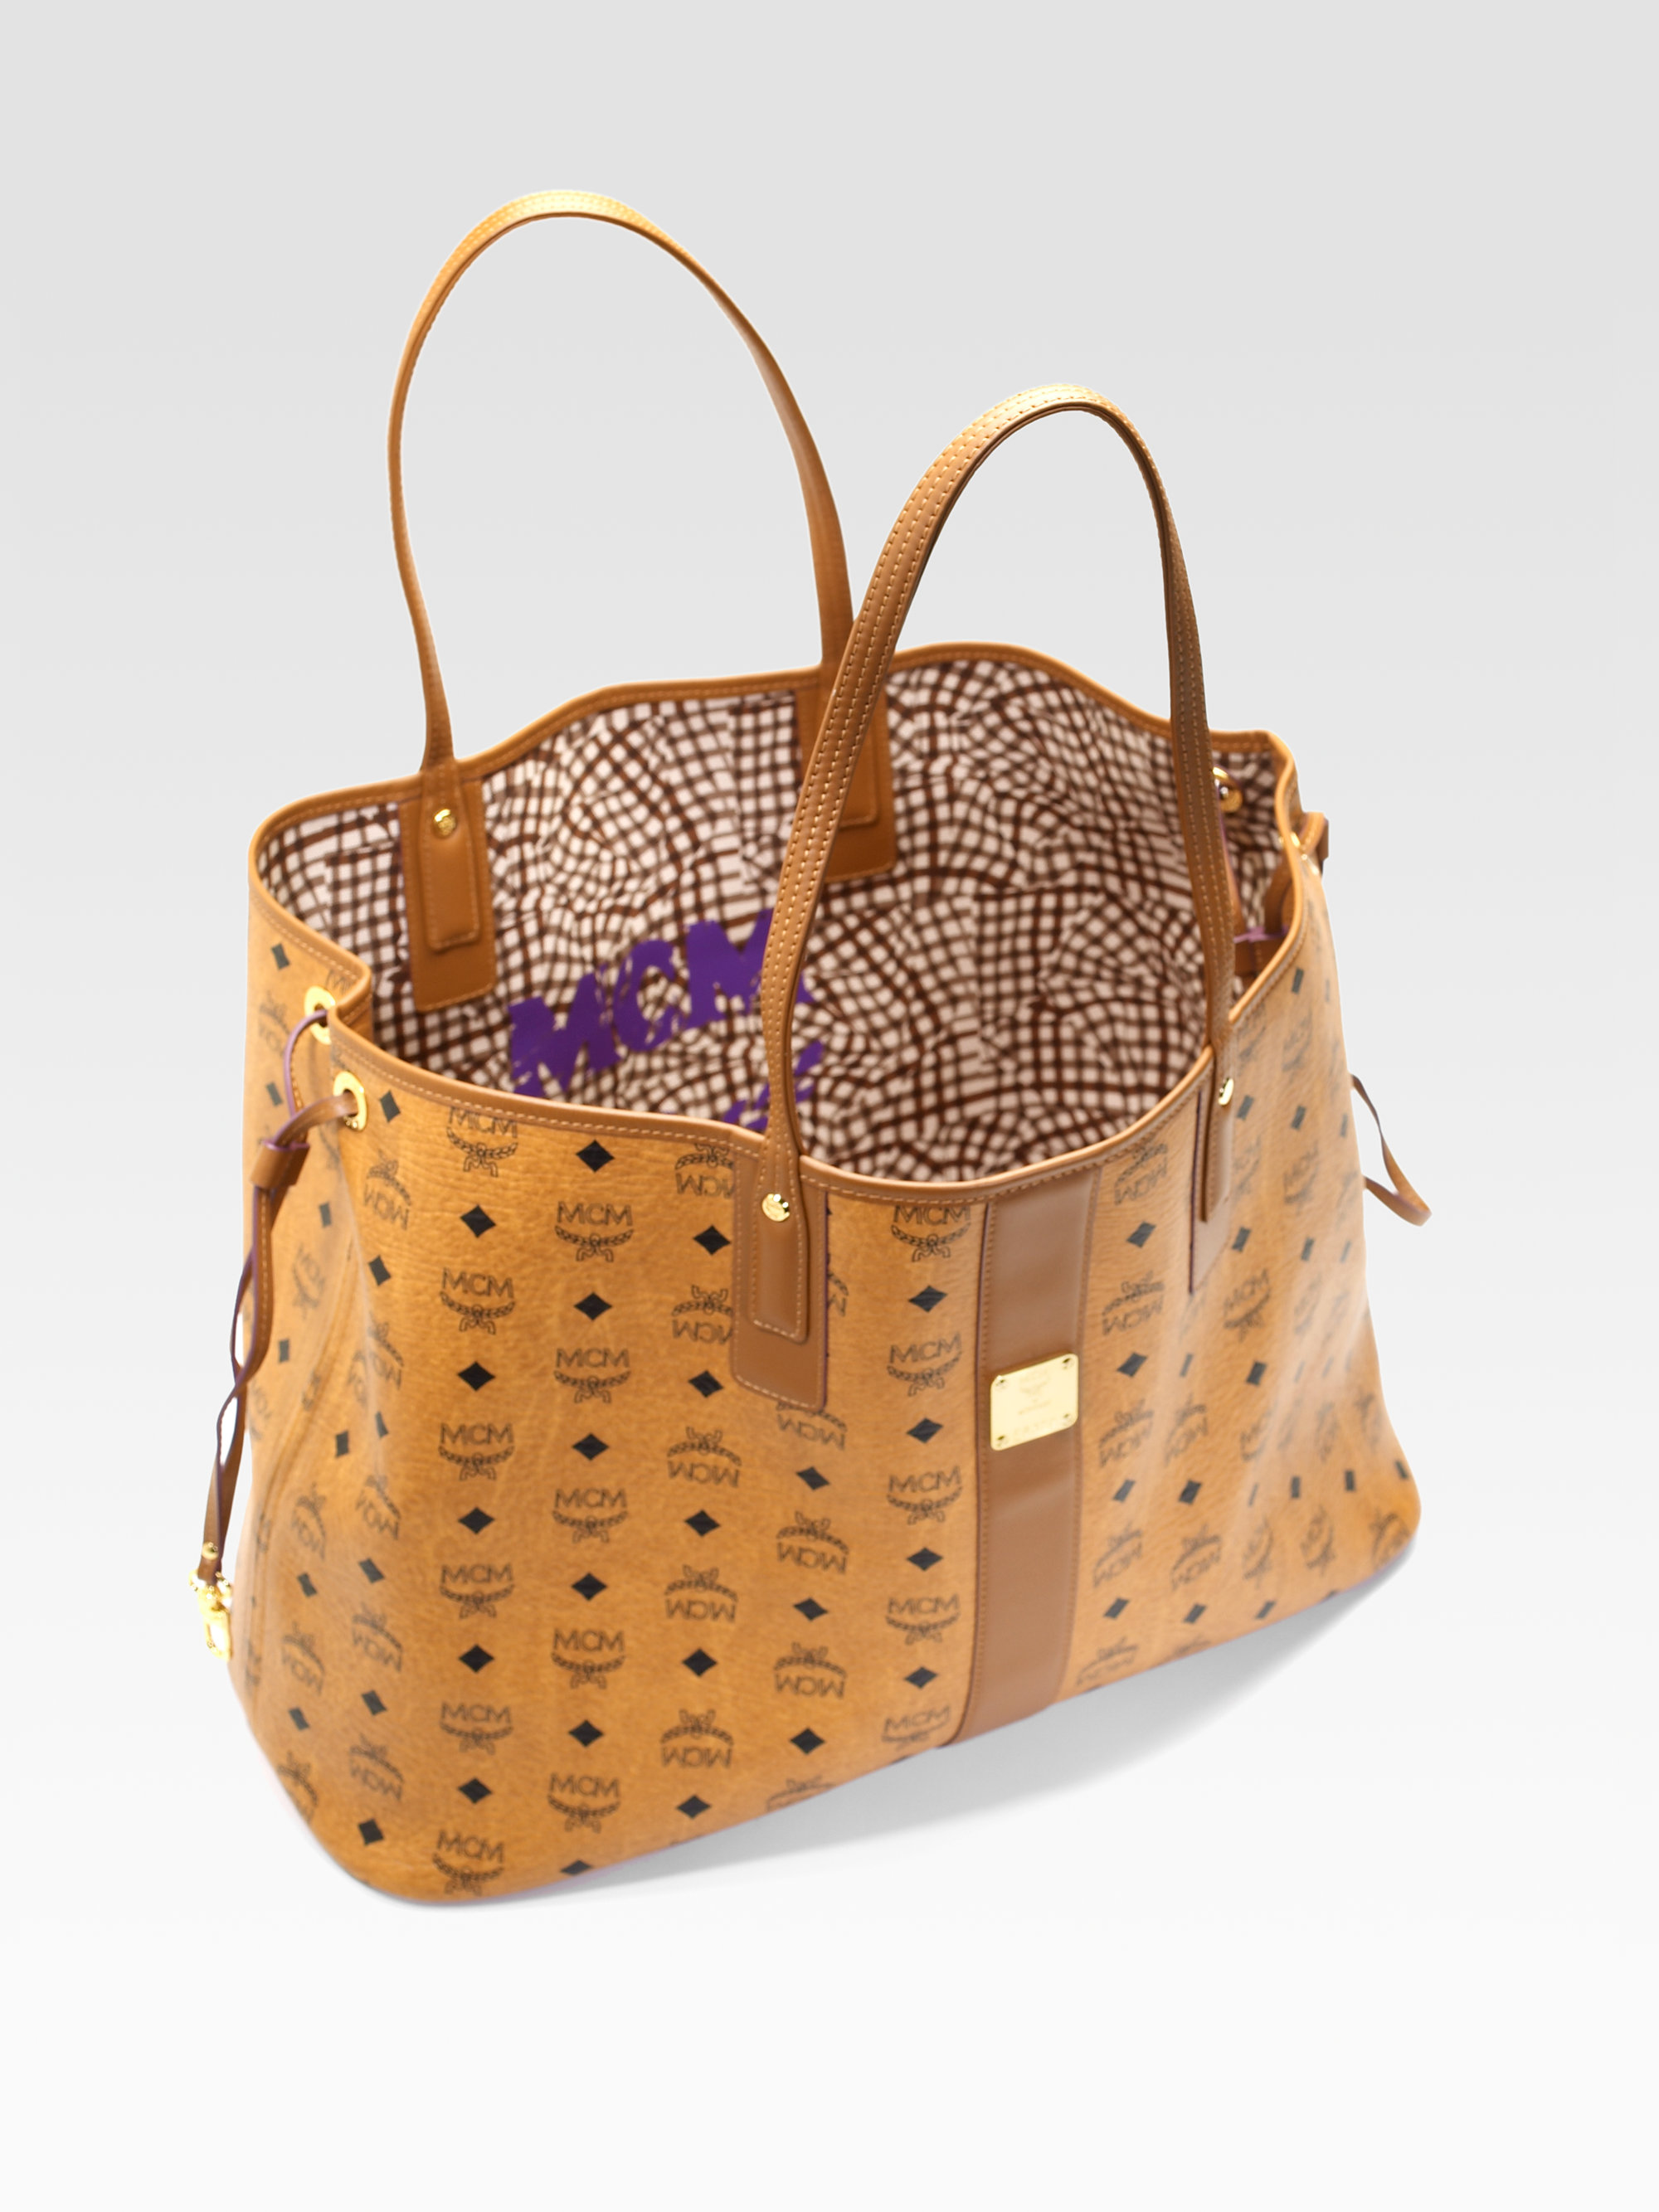 19d8f8ffd Gallery. Previously sold at: Saks Fifth Avenue · Women's Reversible Bags